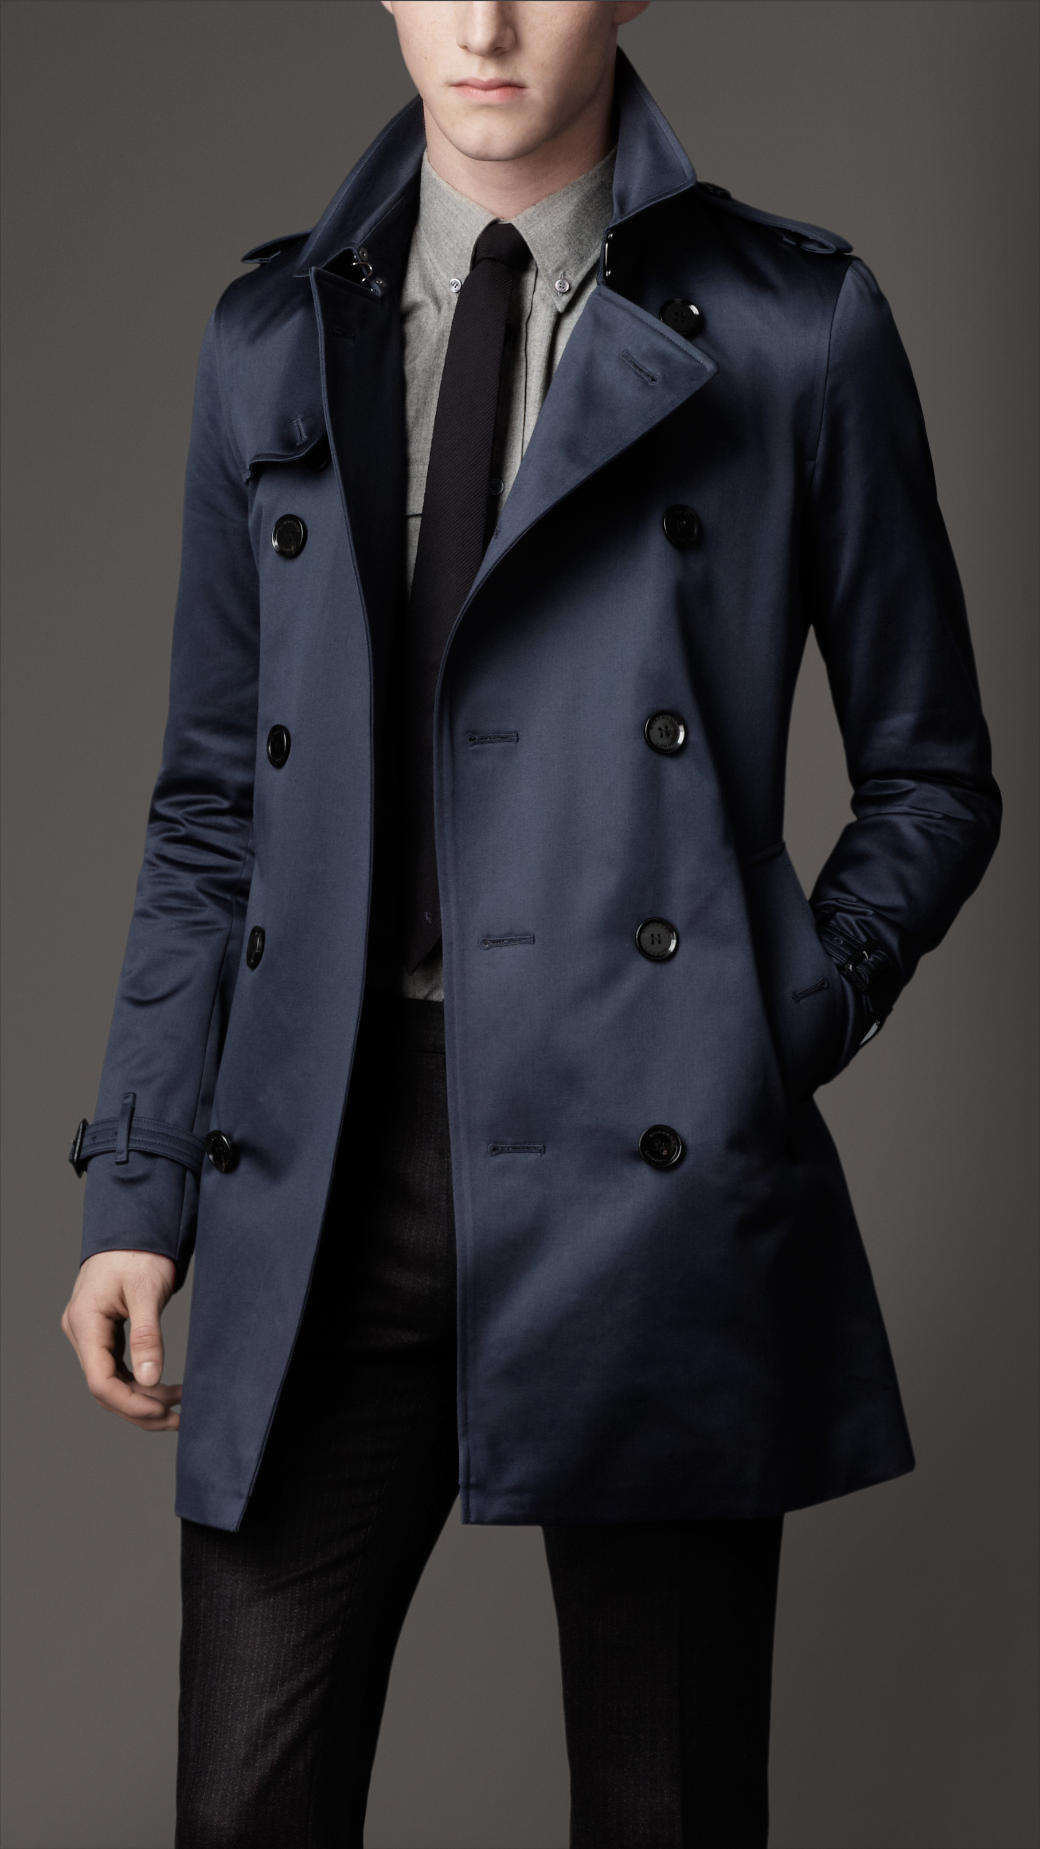 burberry midlength heritage cotton trench coat in blue for men lyst. Black Bedroom Furniture Sets. Home Design Ideas